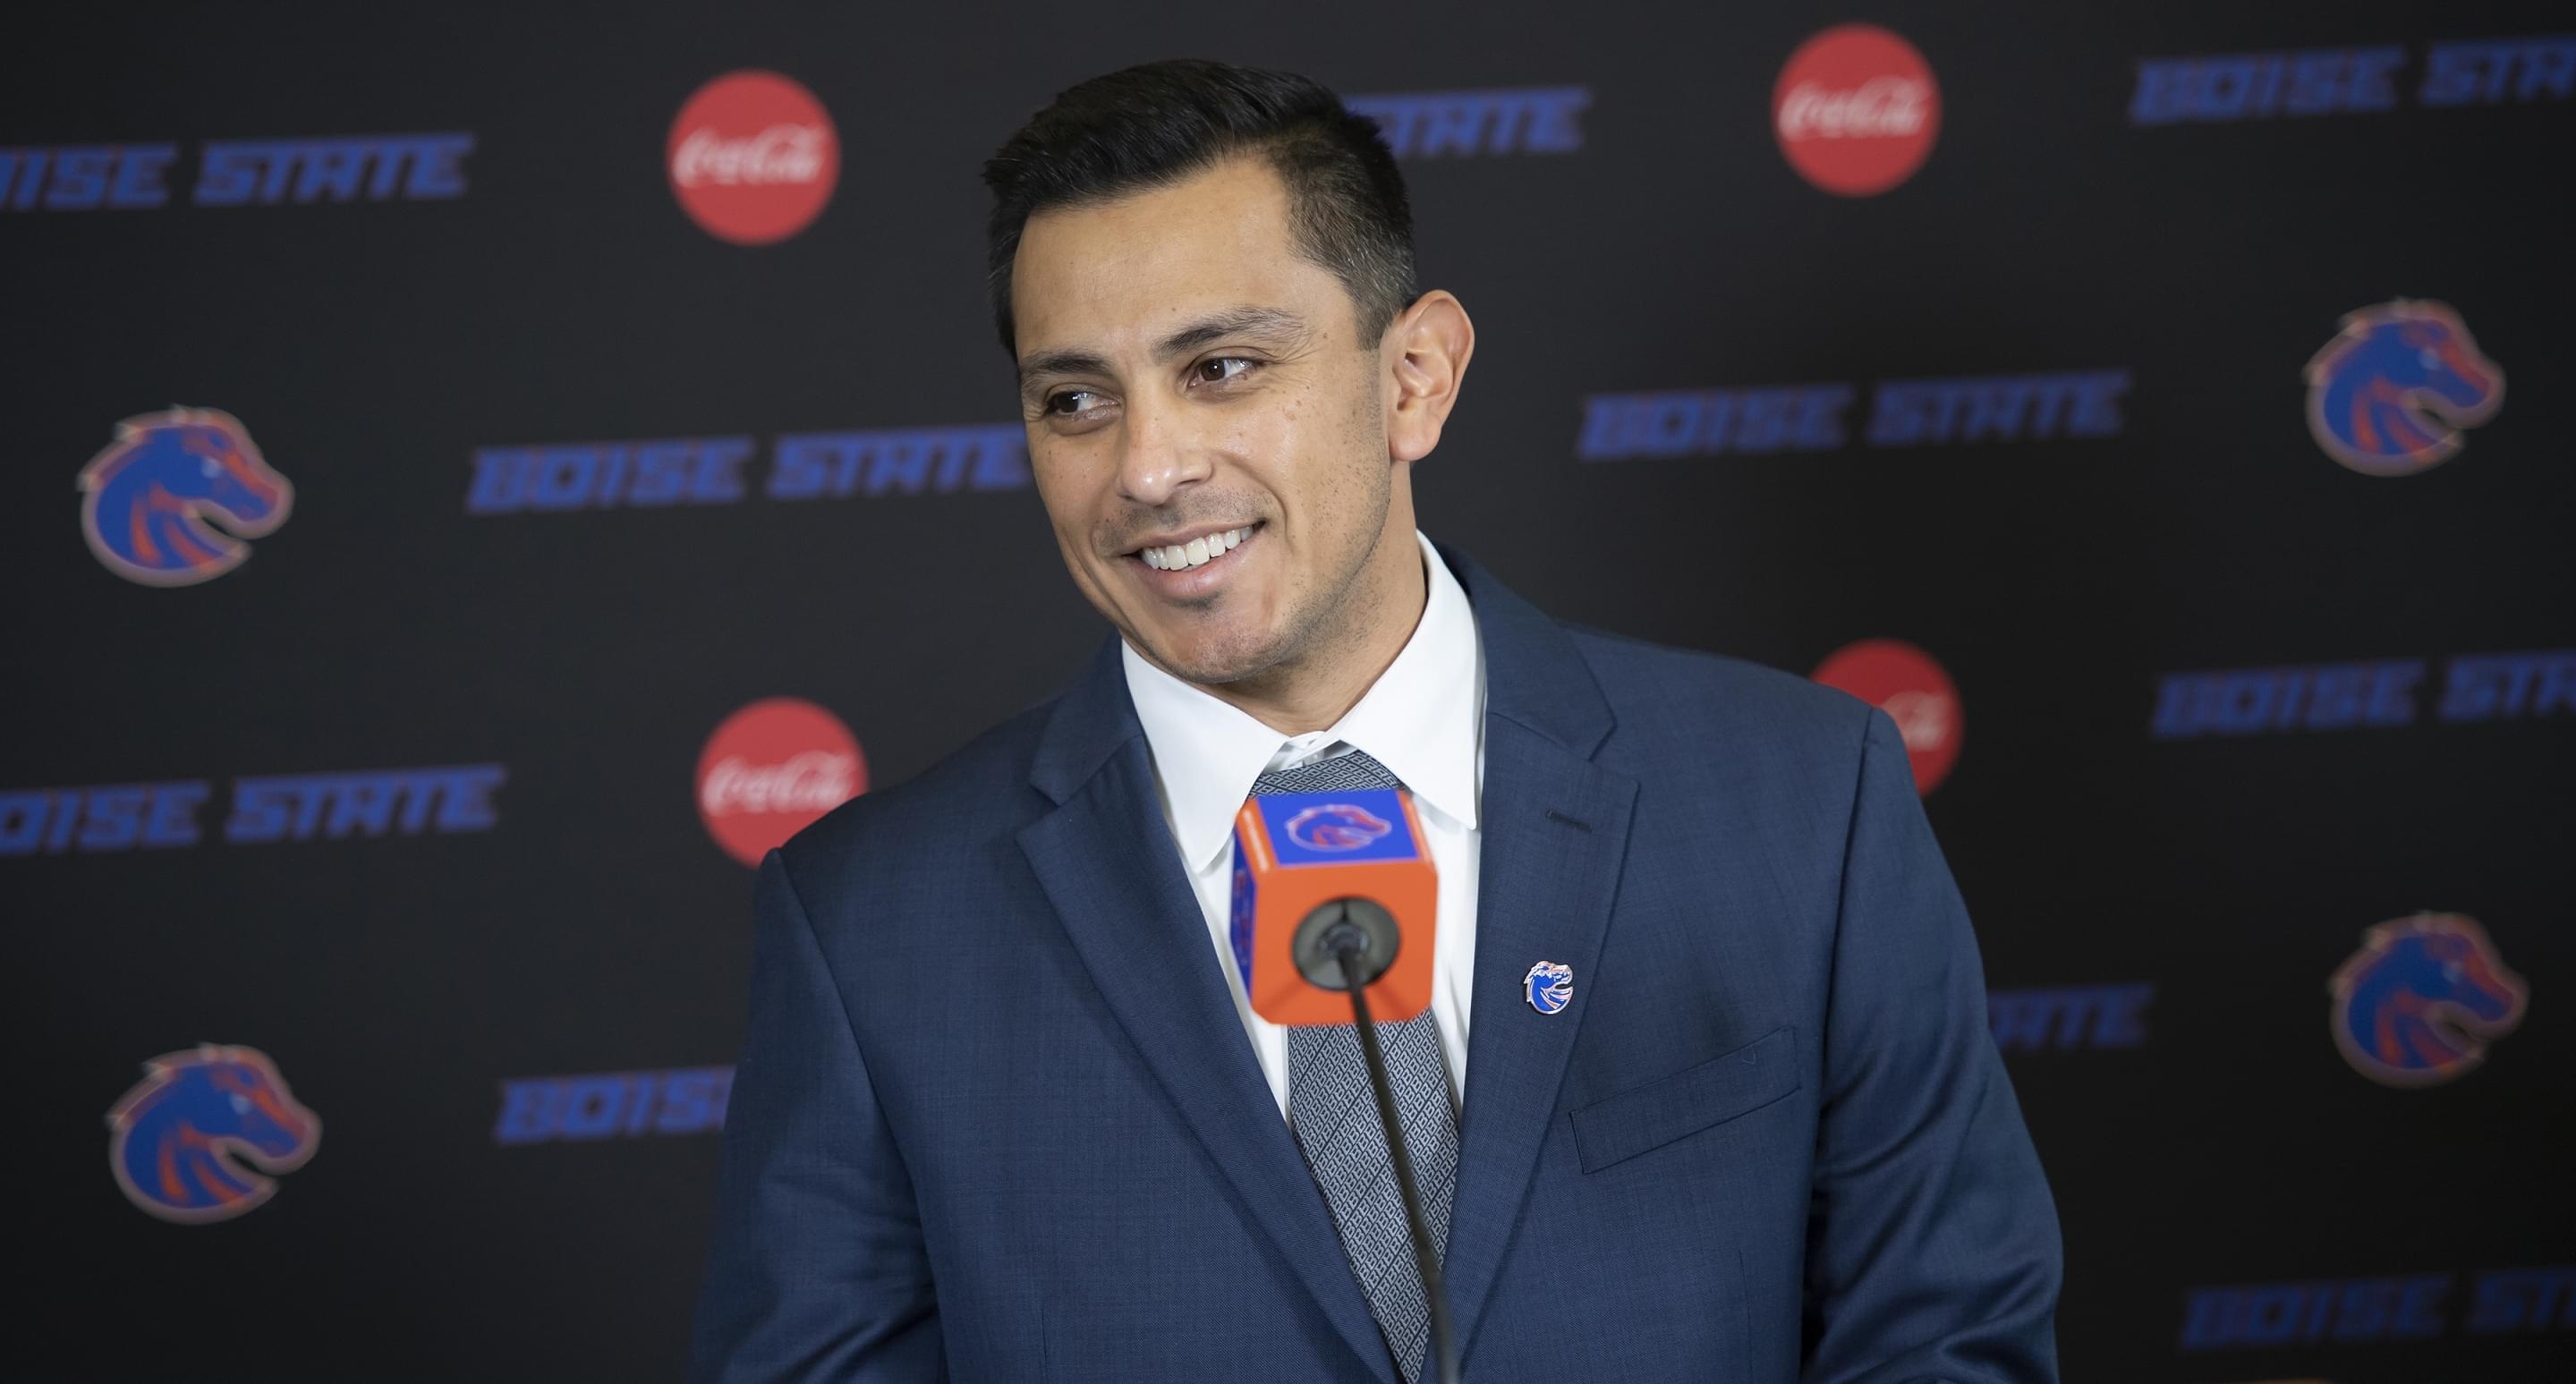 BOISE STATE COACH ANDY AVALOS SPENDS 30 MINUTES WITH IST